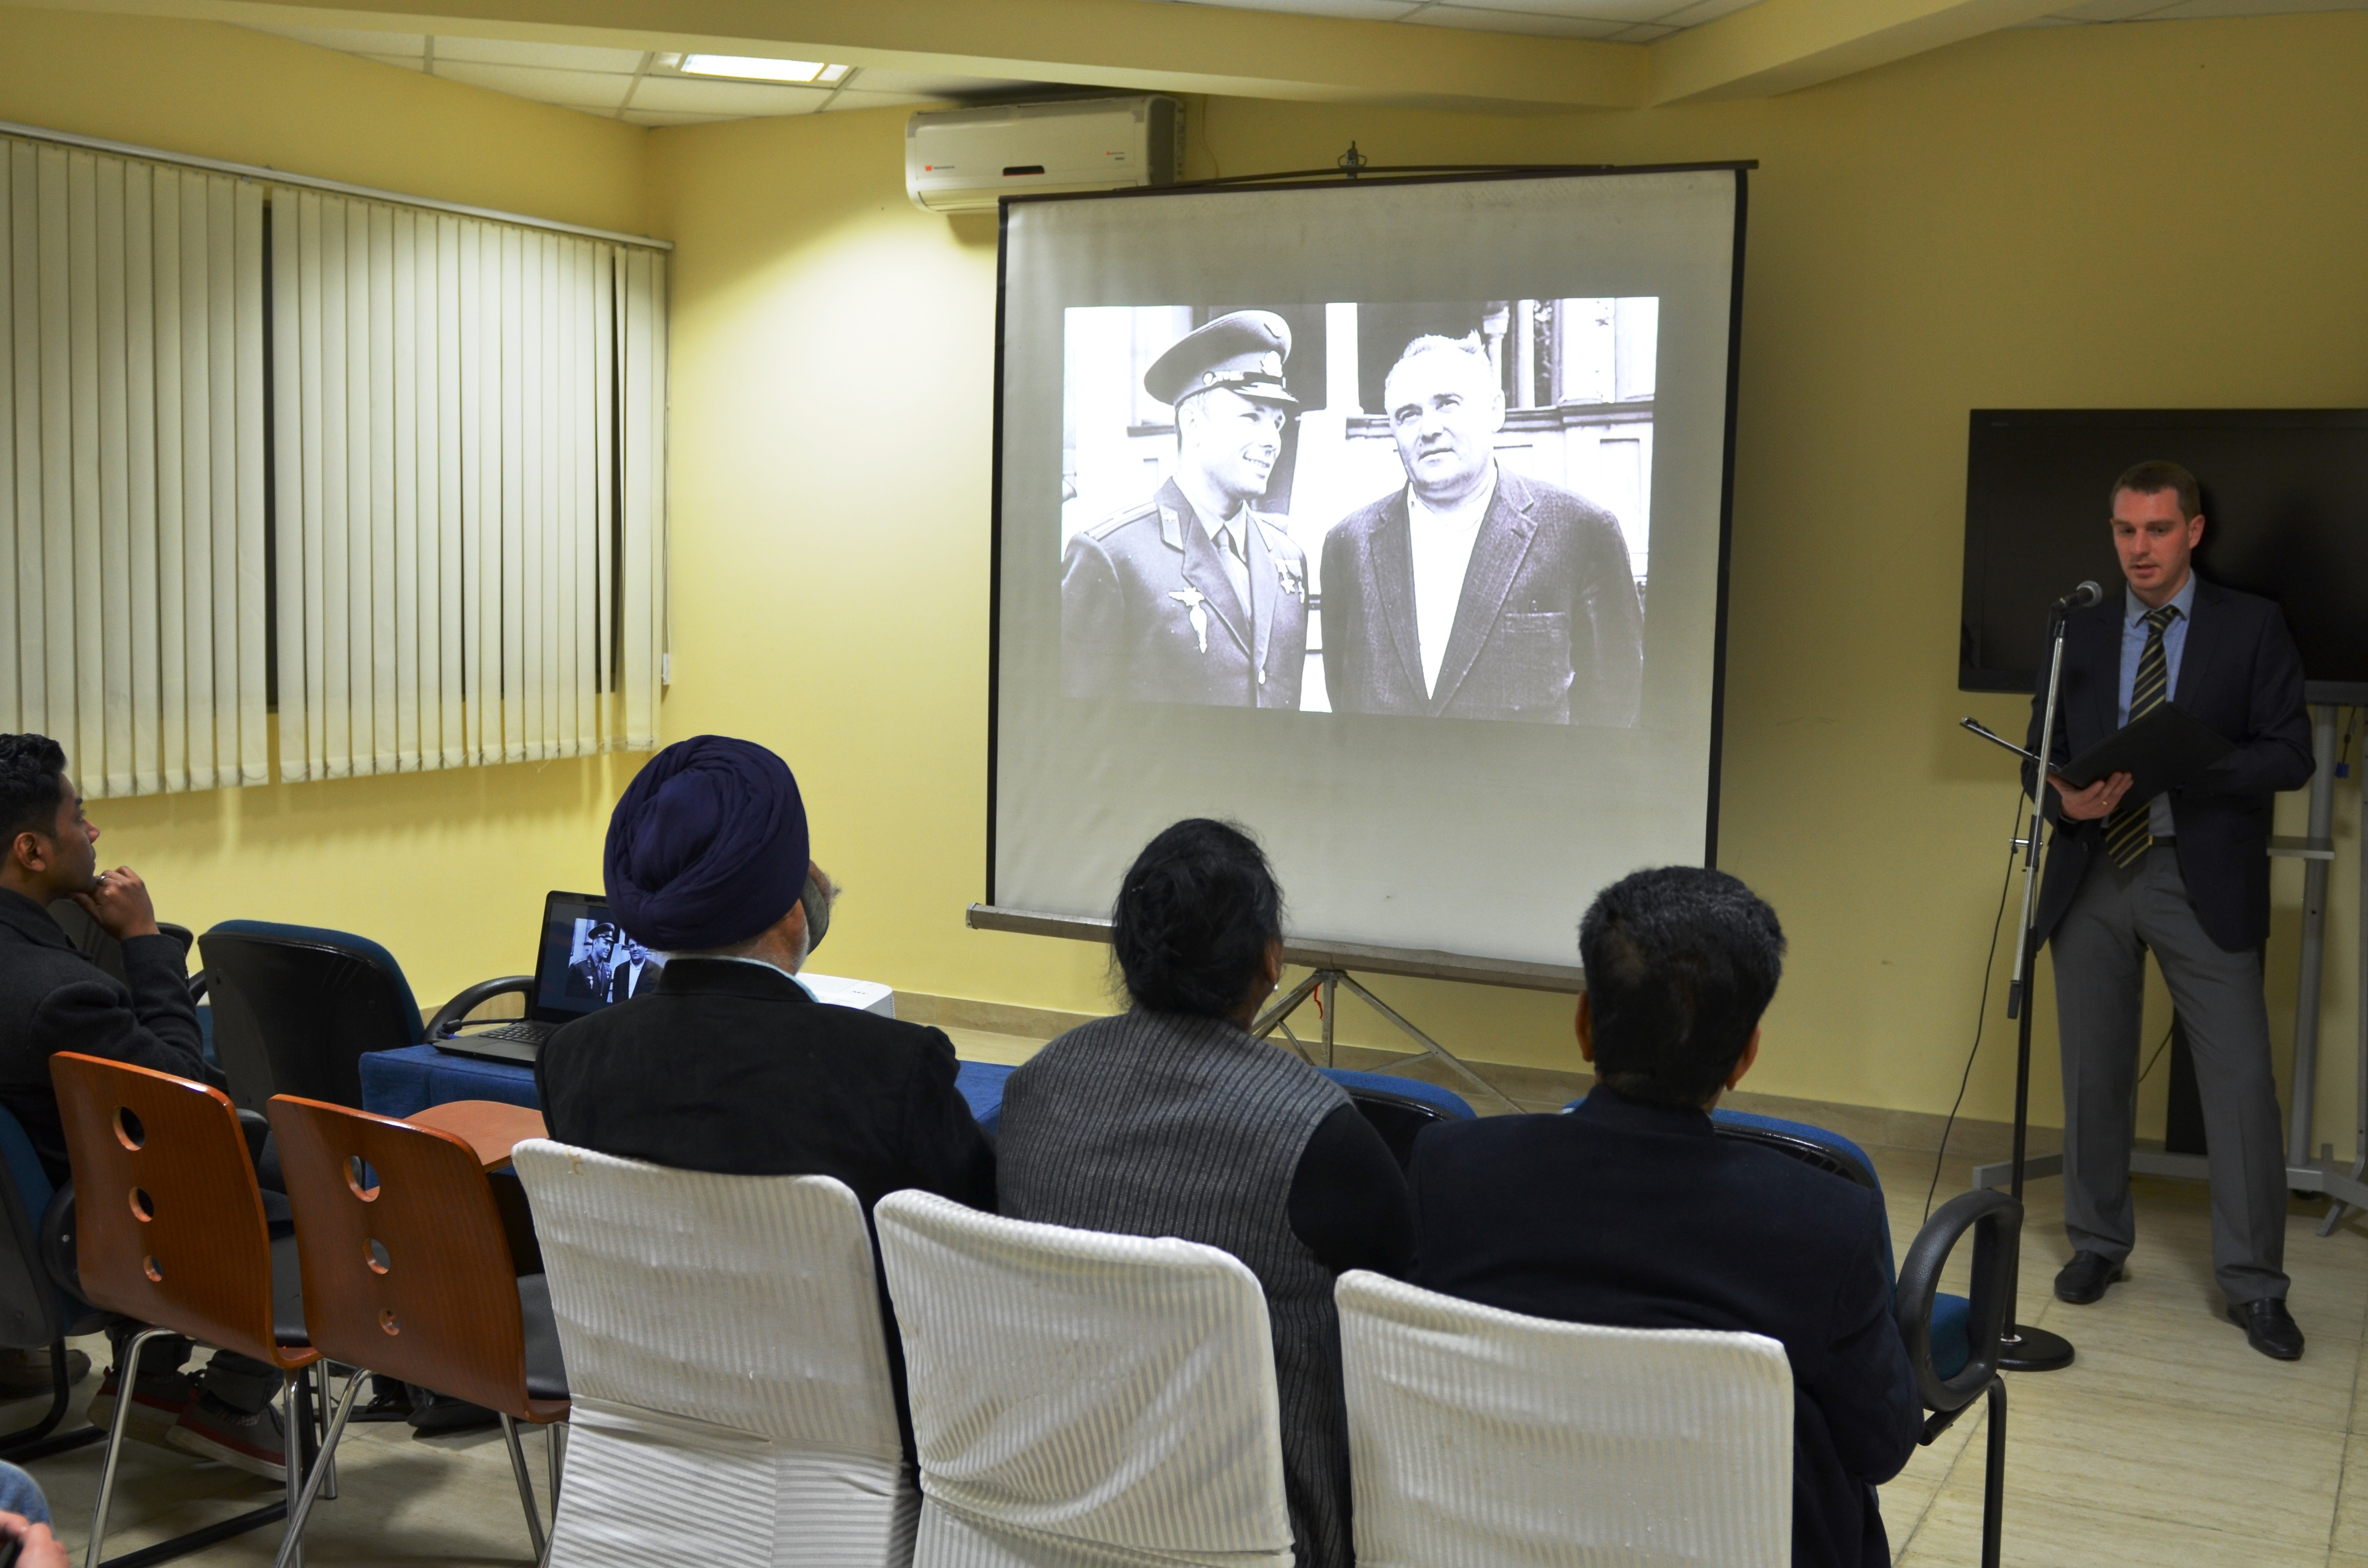 Two documentaries about Sergei Korolev were shown at the RCSC in New Delhi.